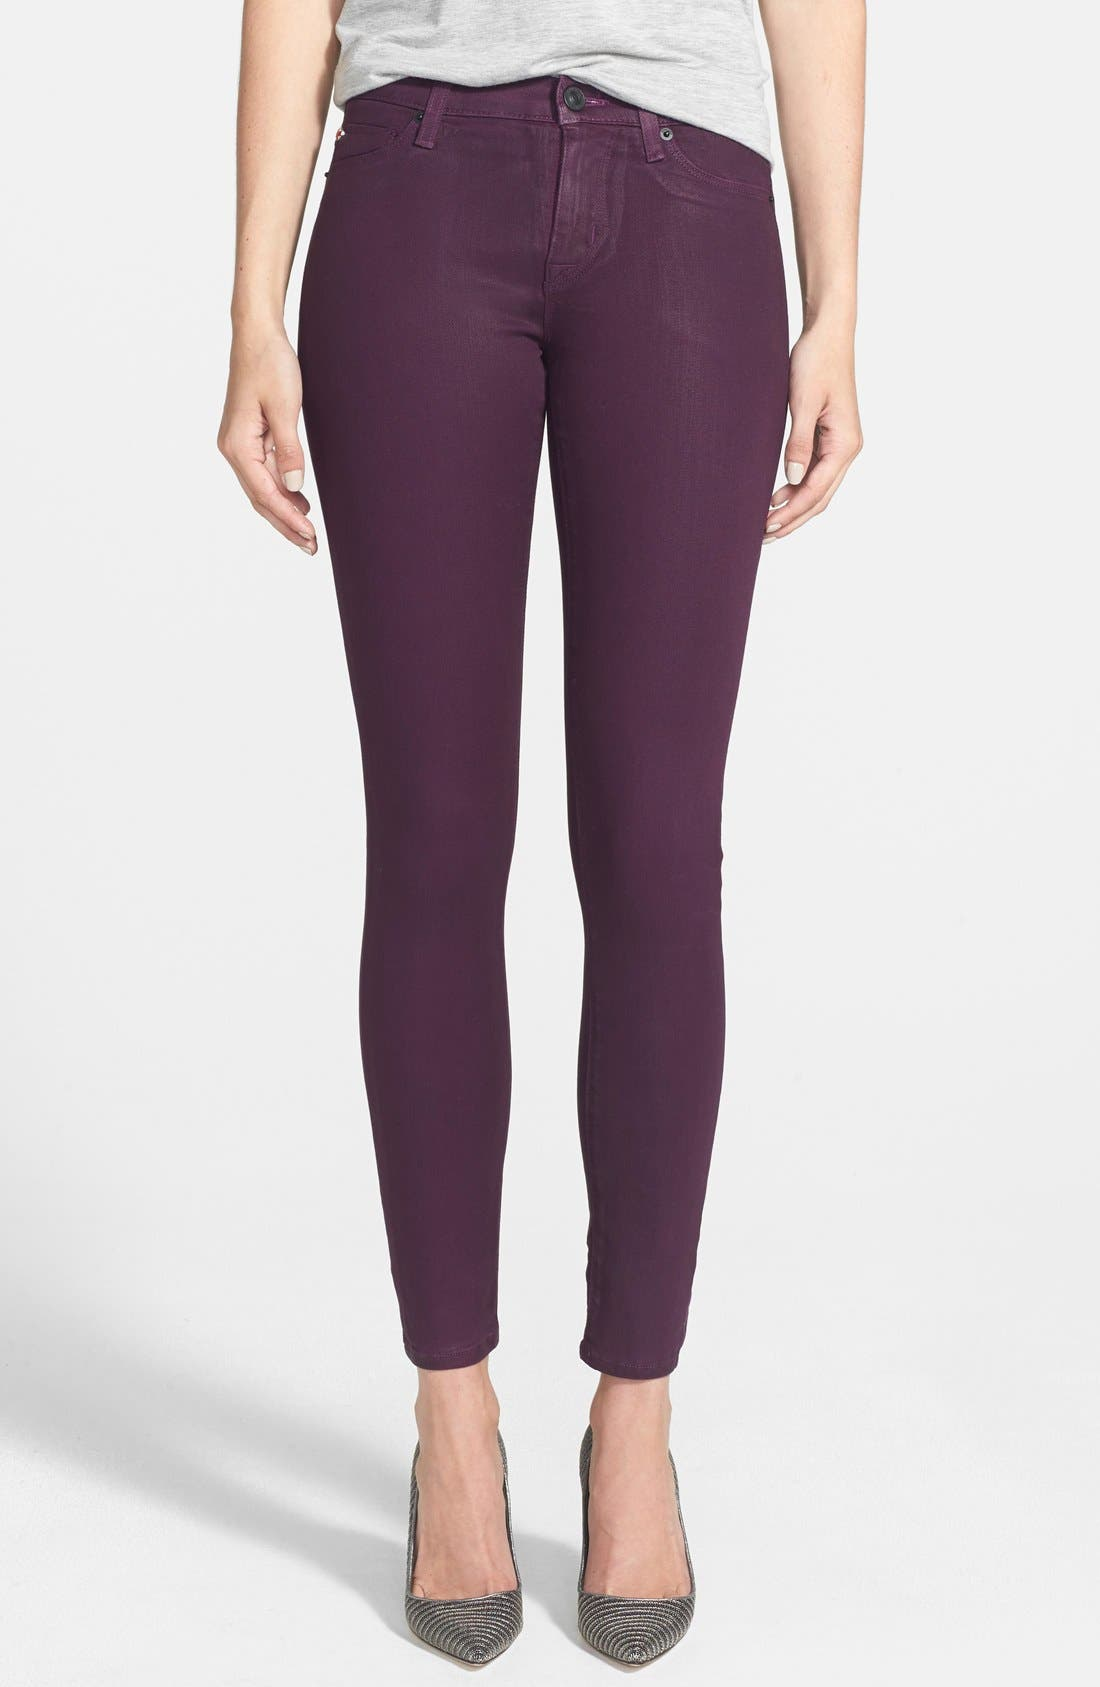 Alternate Image 1 Selected - Hudson Jeans 'Nico' Mid Rise Skinny Stretch Jeans (Mulberry Wax)